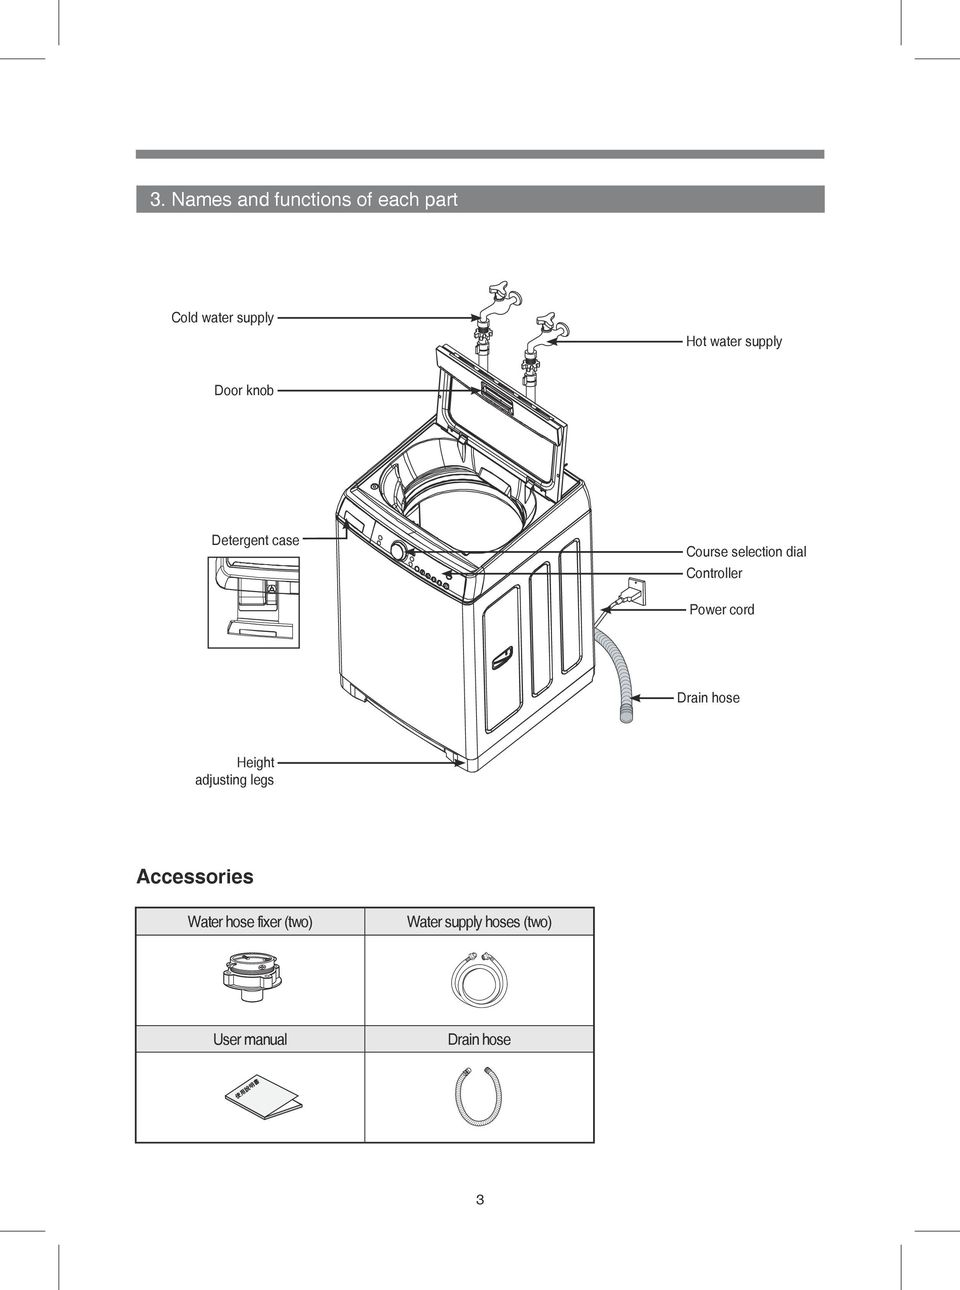 Service Manual Washing Machine Model Kuf 320ld S M No Pdf Troubleshooting Control Circuitssequence Start And Stop Electric Door Knob Detergent Case Course Selection Dial Controller Power